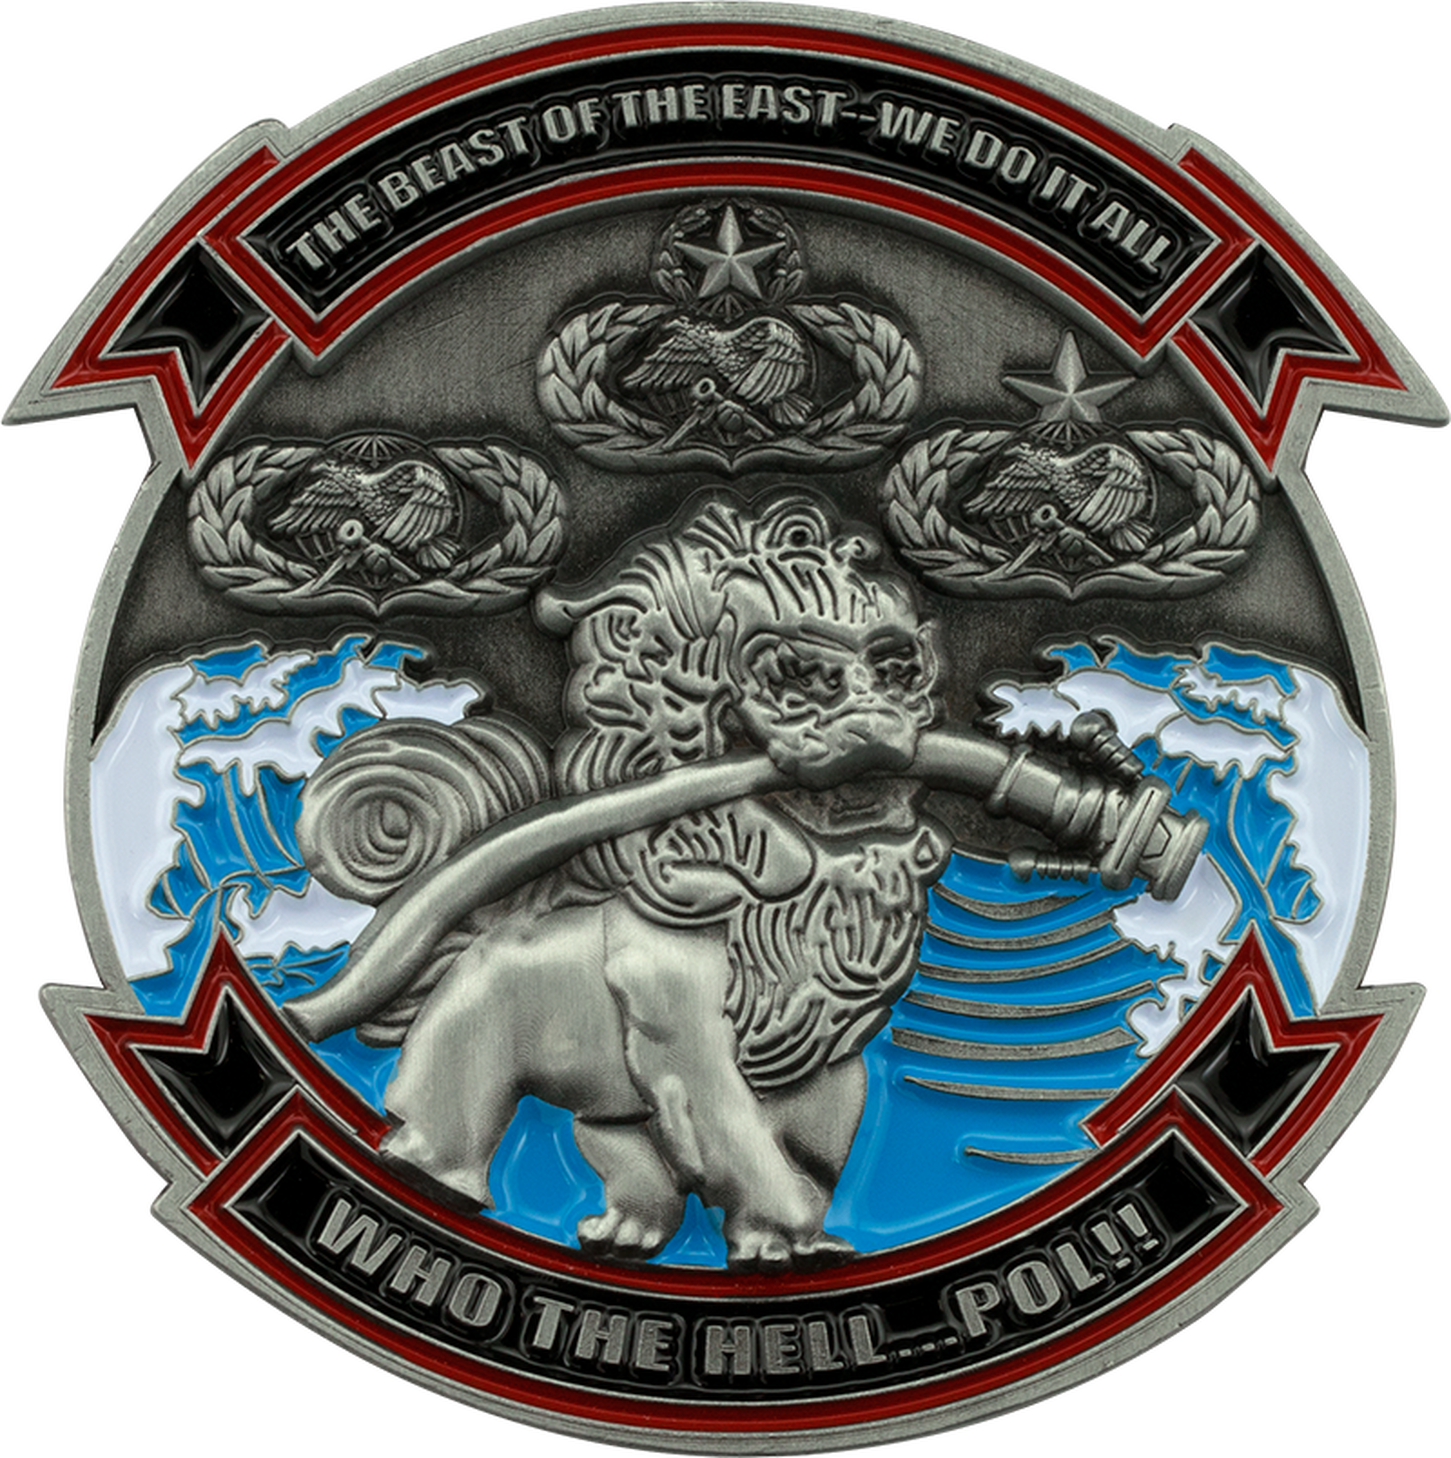 Custom Challenge Coins | 3D Challenge Coins | Military Coins